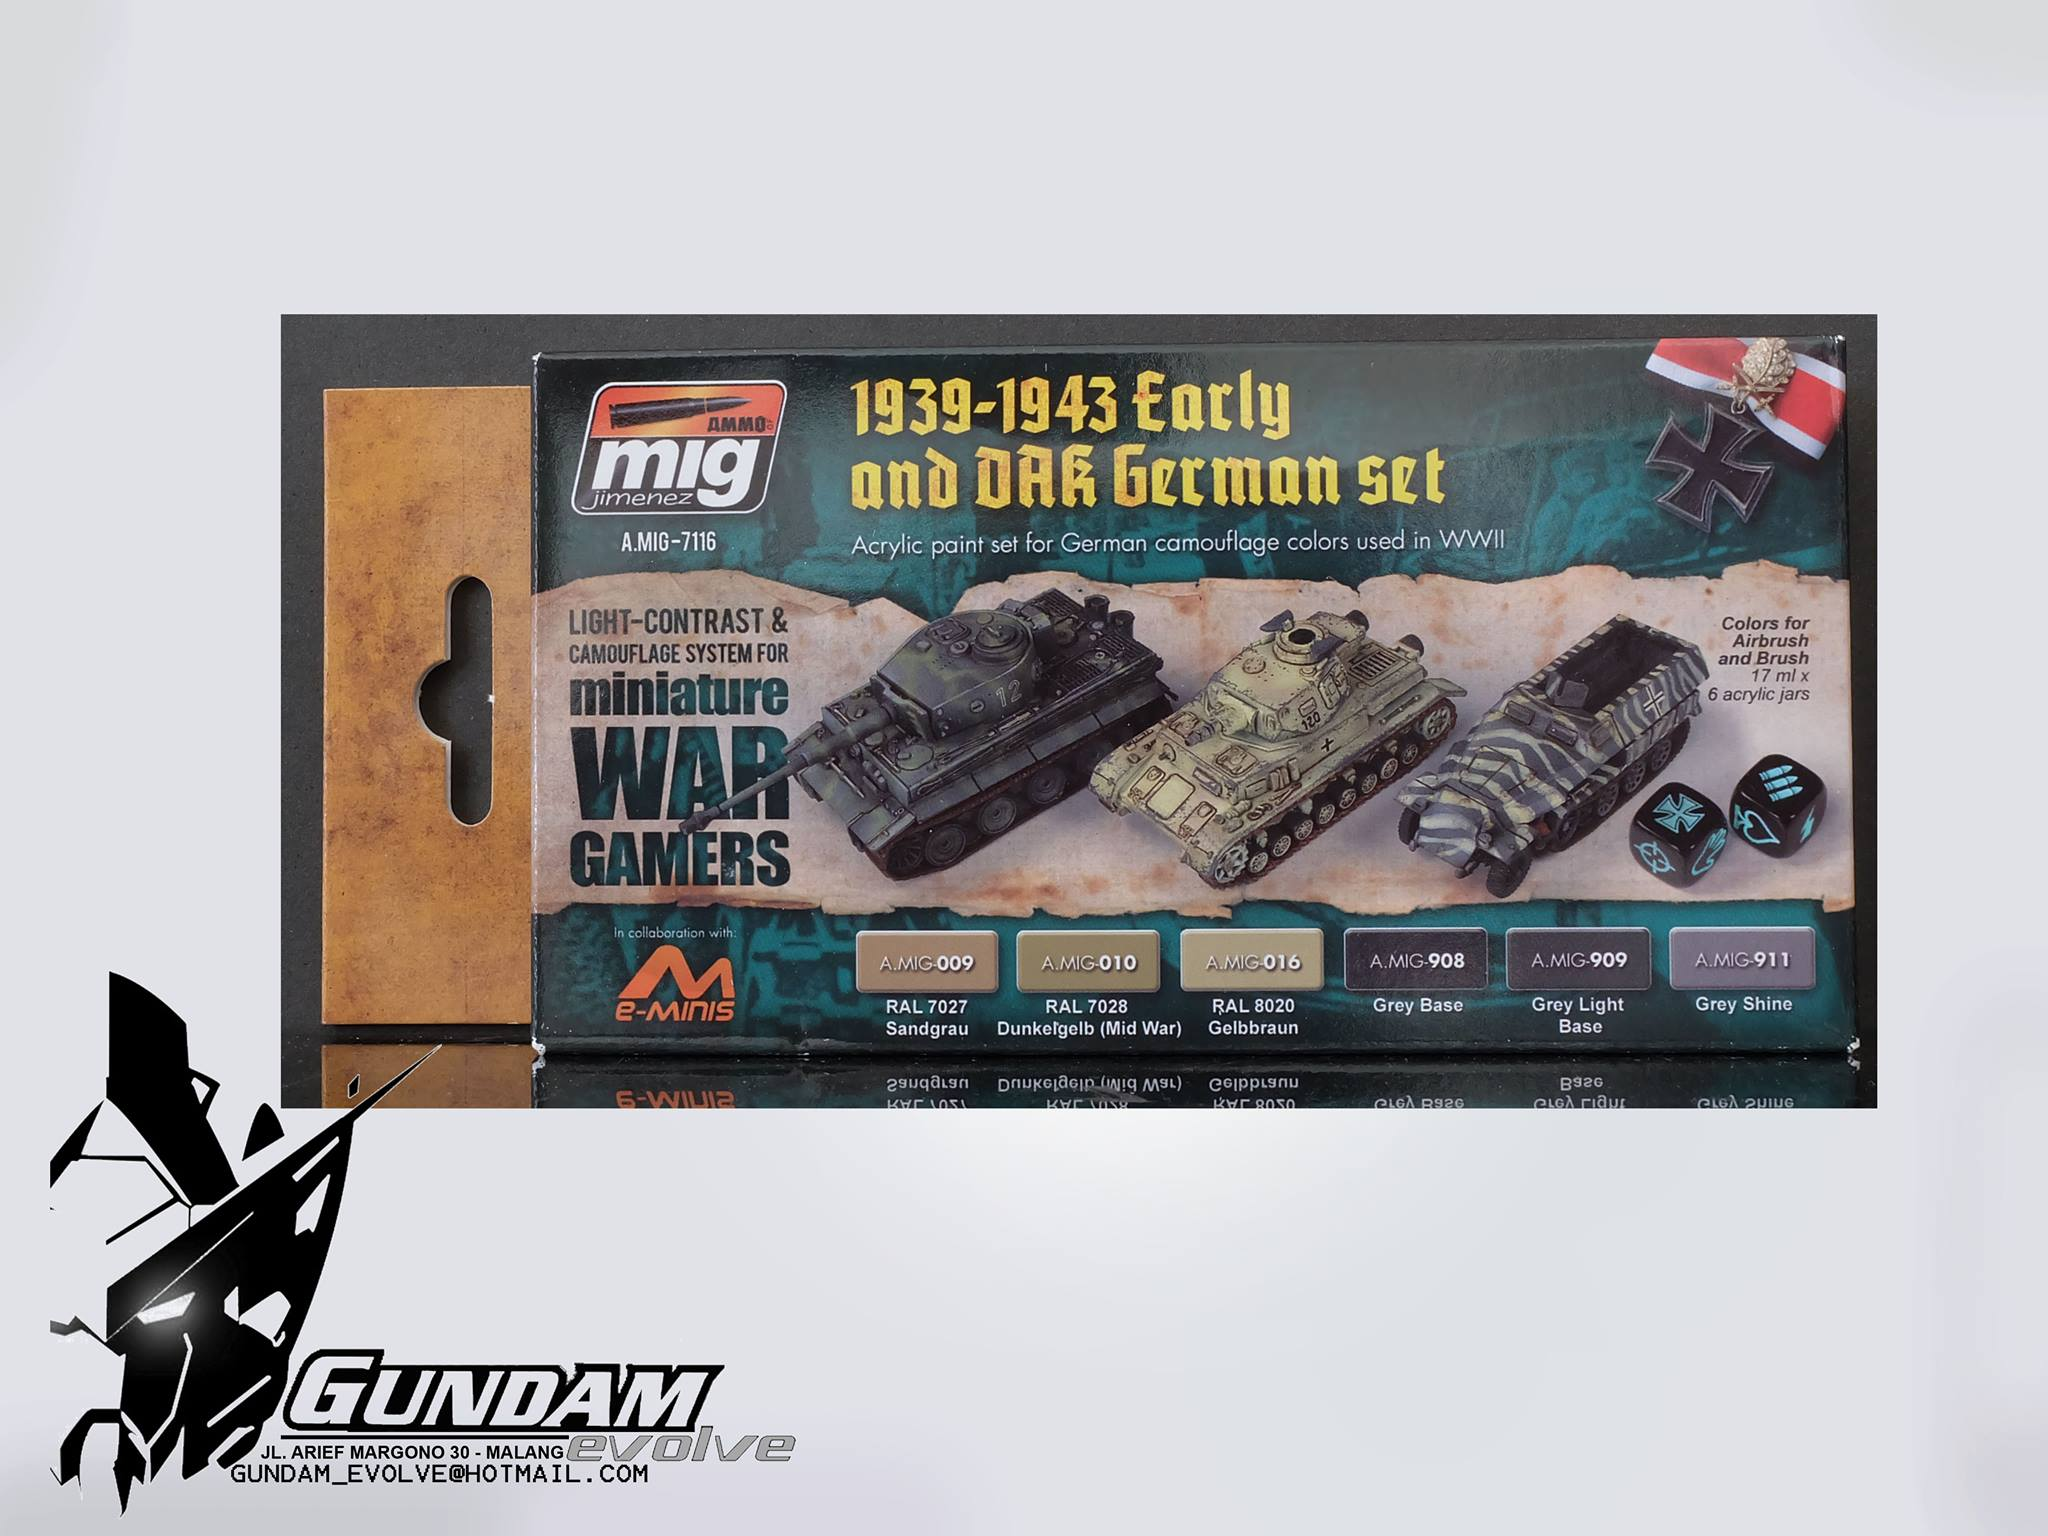 MIG Acrylic Set (6x17ml) : Wargame Early And DAK German Set